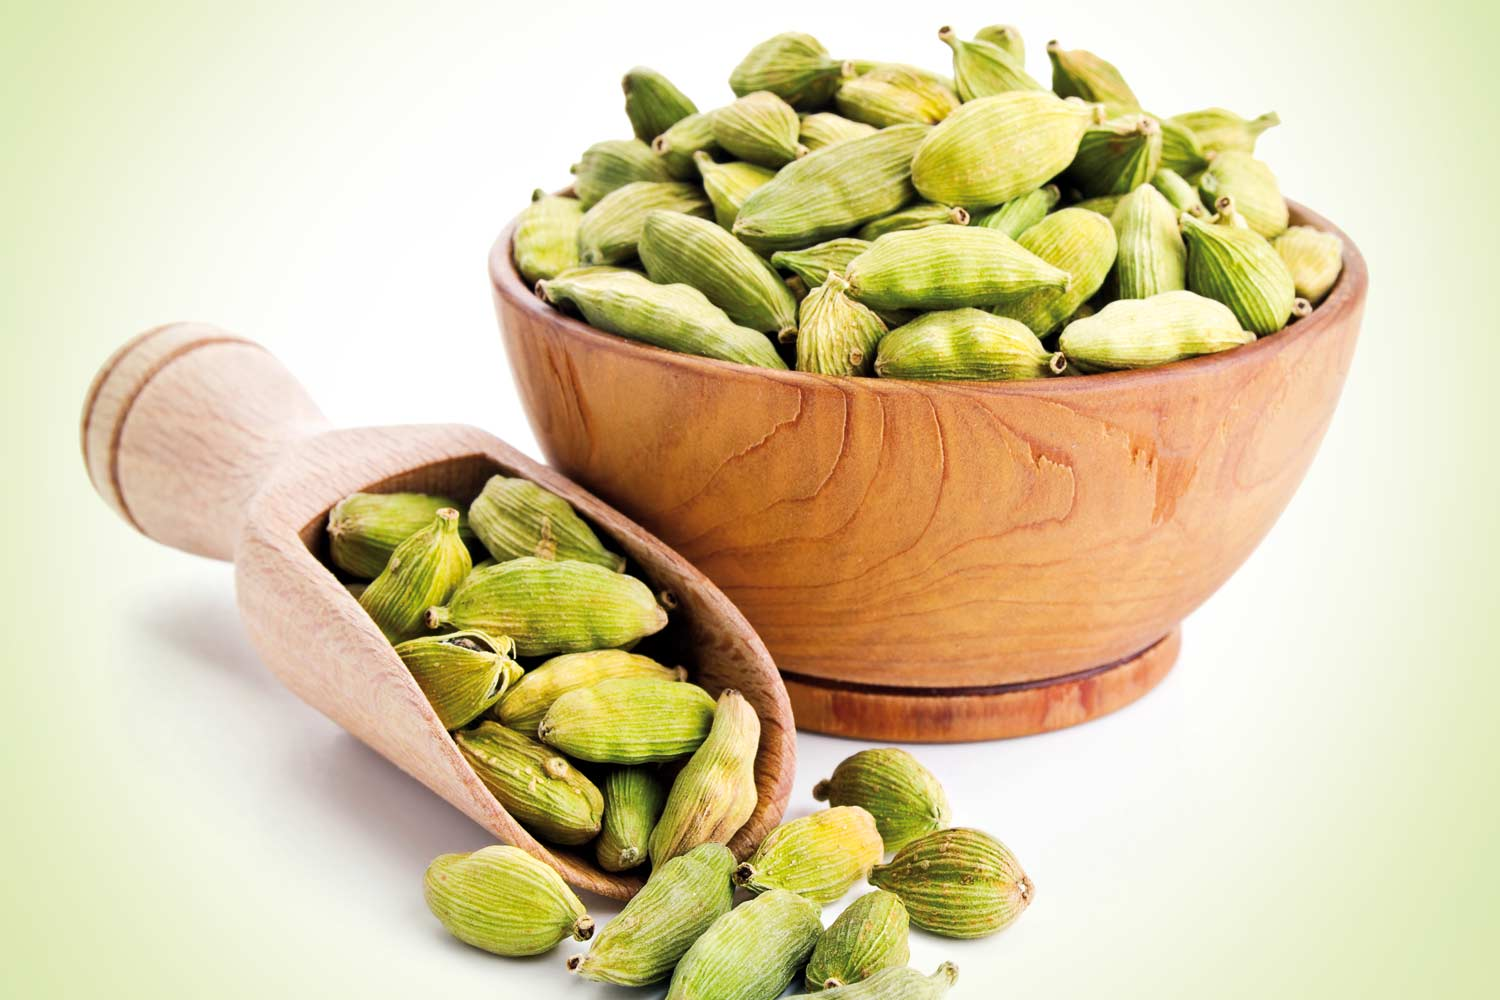 10 amazing home remedies using cardamom - Complete Wellbeing